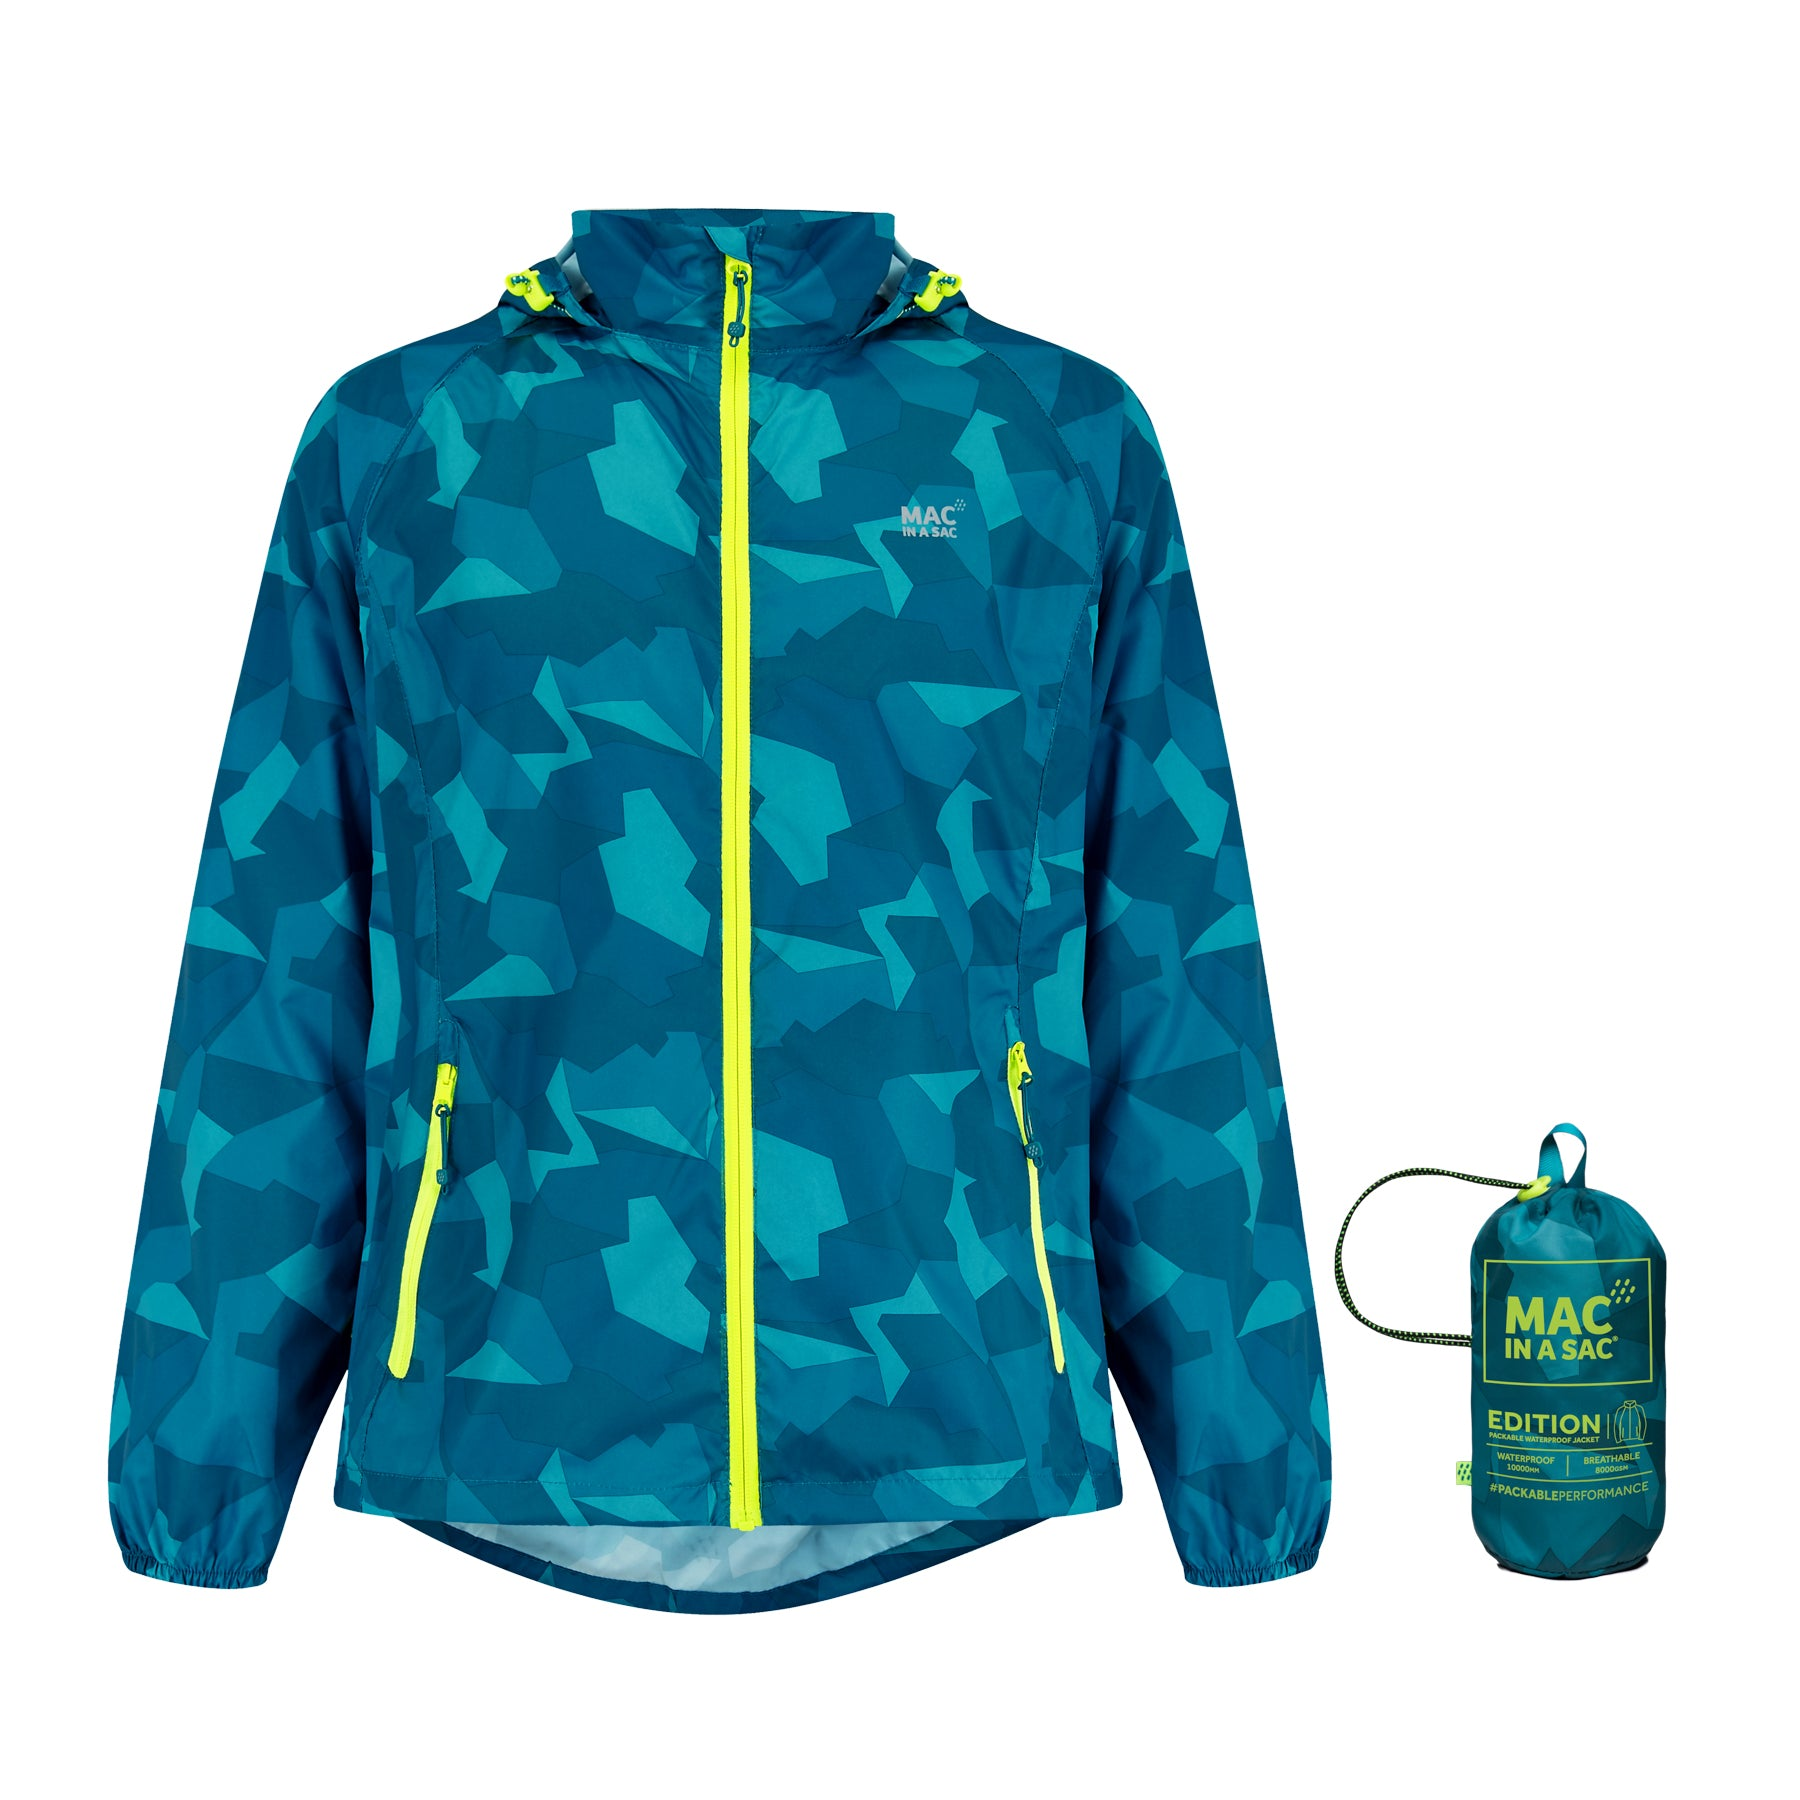 Origin Packable Waterproof Jacket - Teal Camo